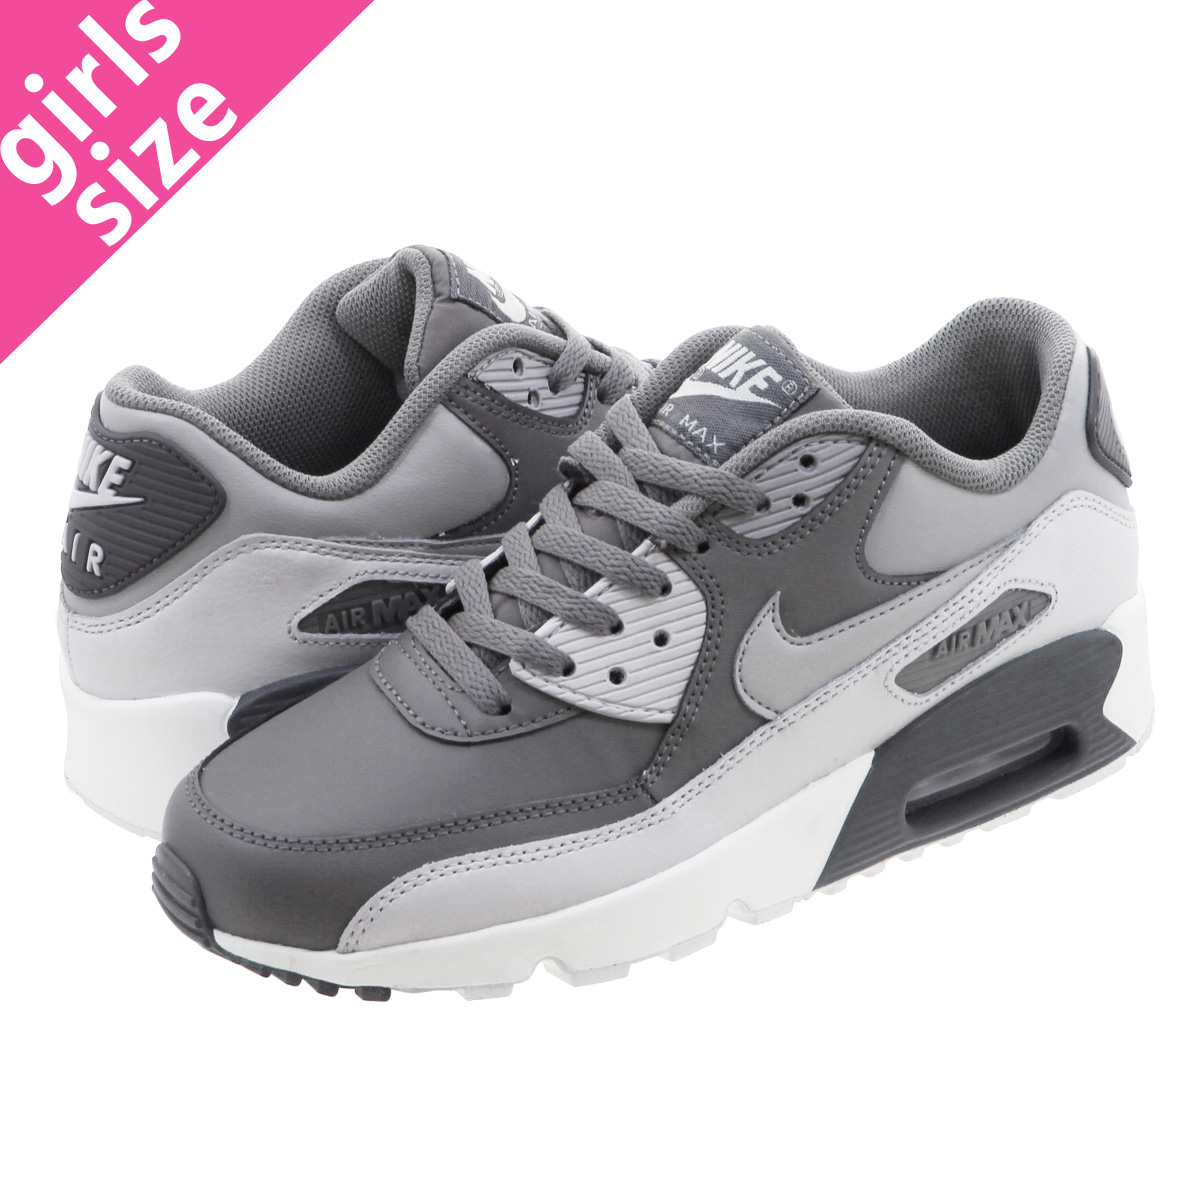 sale retailer 8e4b6 7b564 NIKE AIR MAX 90 LTR GS Kie Ney AMAX 90 leather GS COOL GREY WOLF GREY  833,412-013